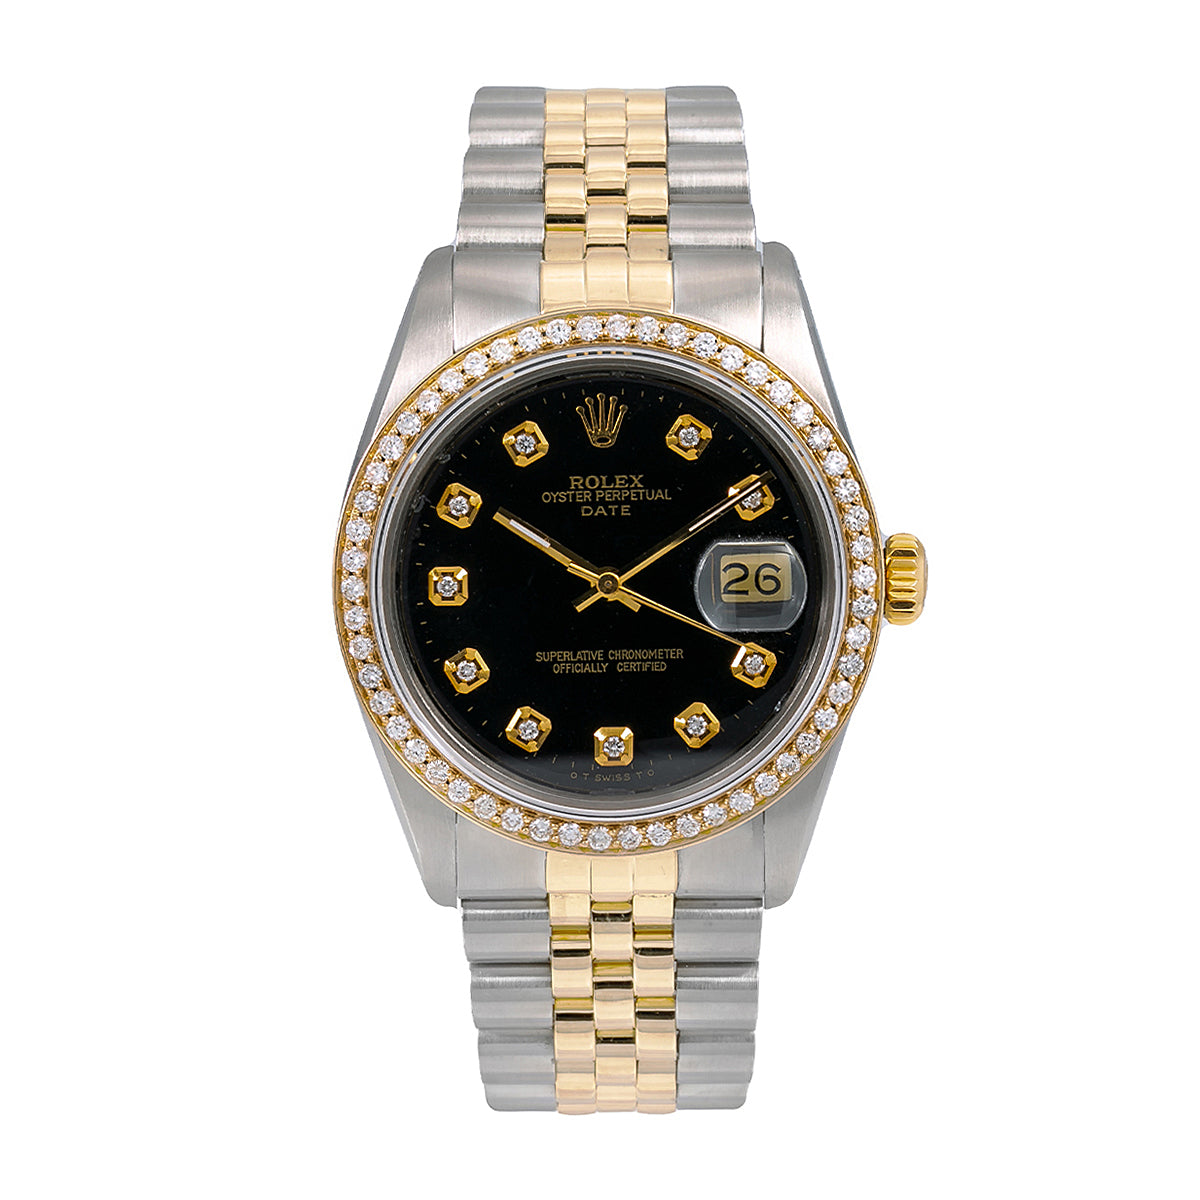 Rolex Datejust Diamond Watch, 16013 36mm, Black Diamond Dial With 1.20 CT Diamonds